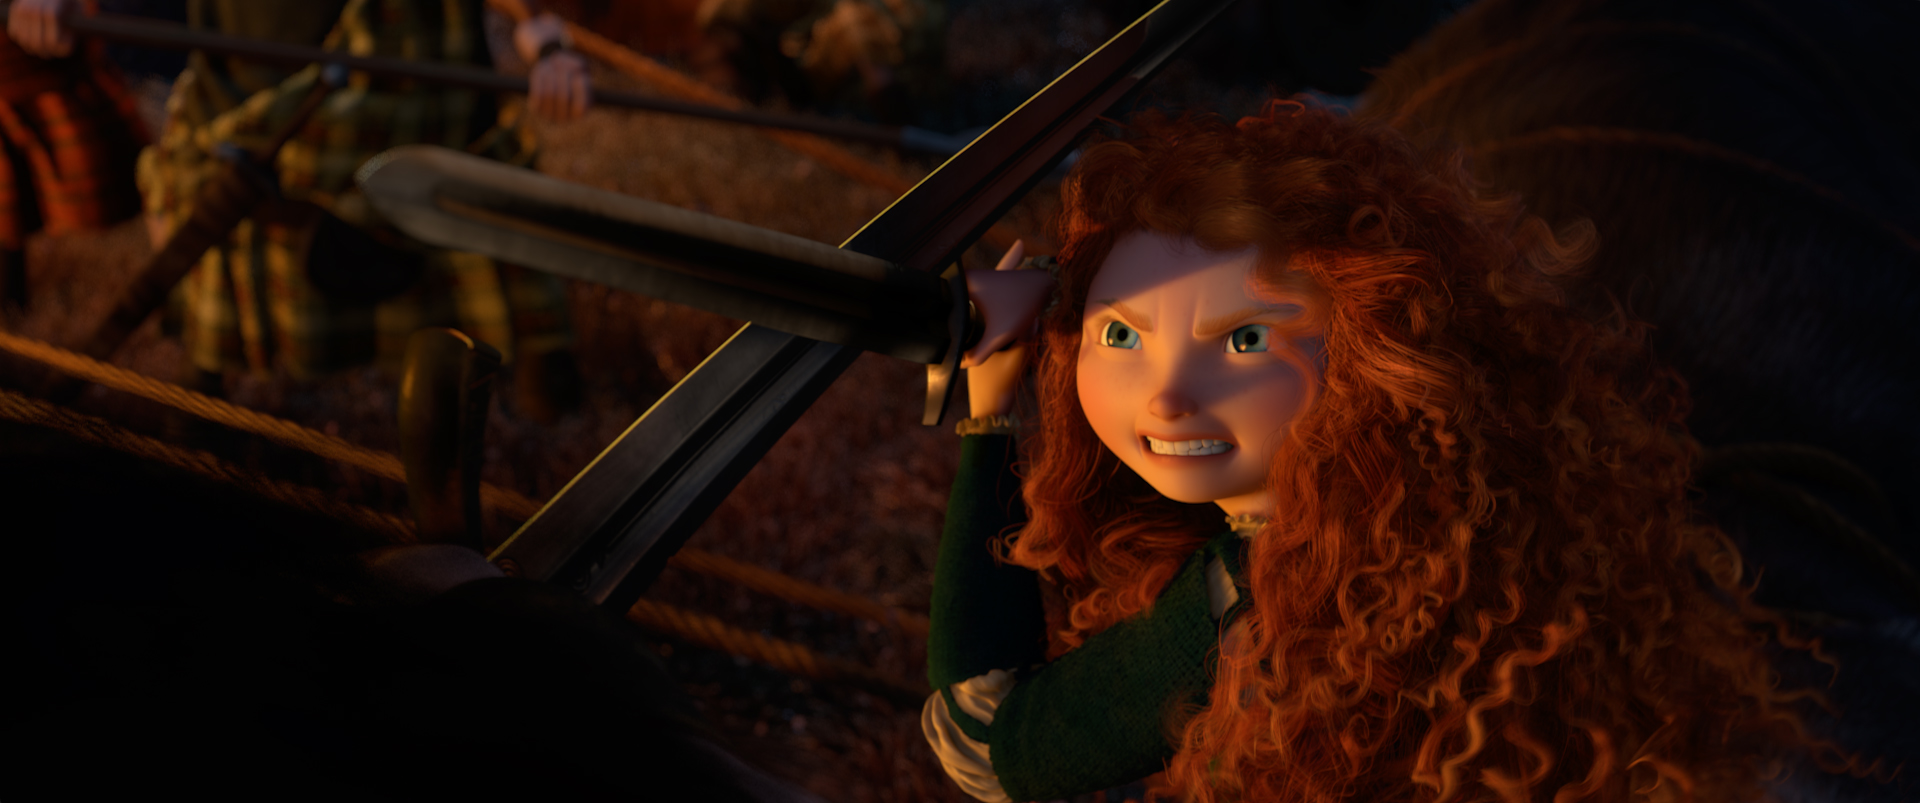 15 New Hi-Res Images From 'Brave' Released